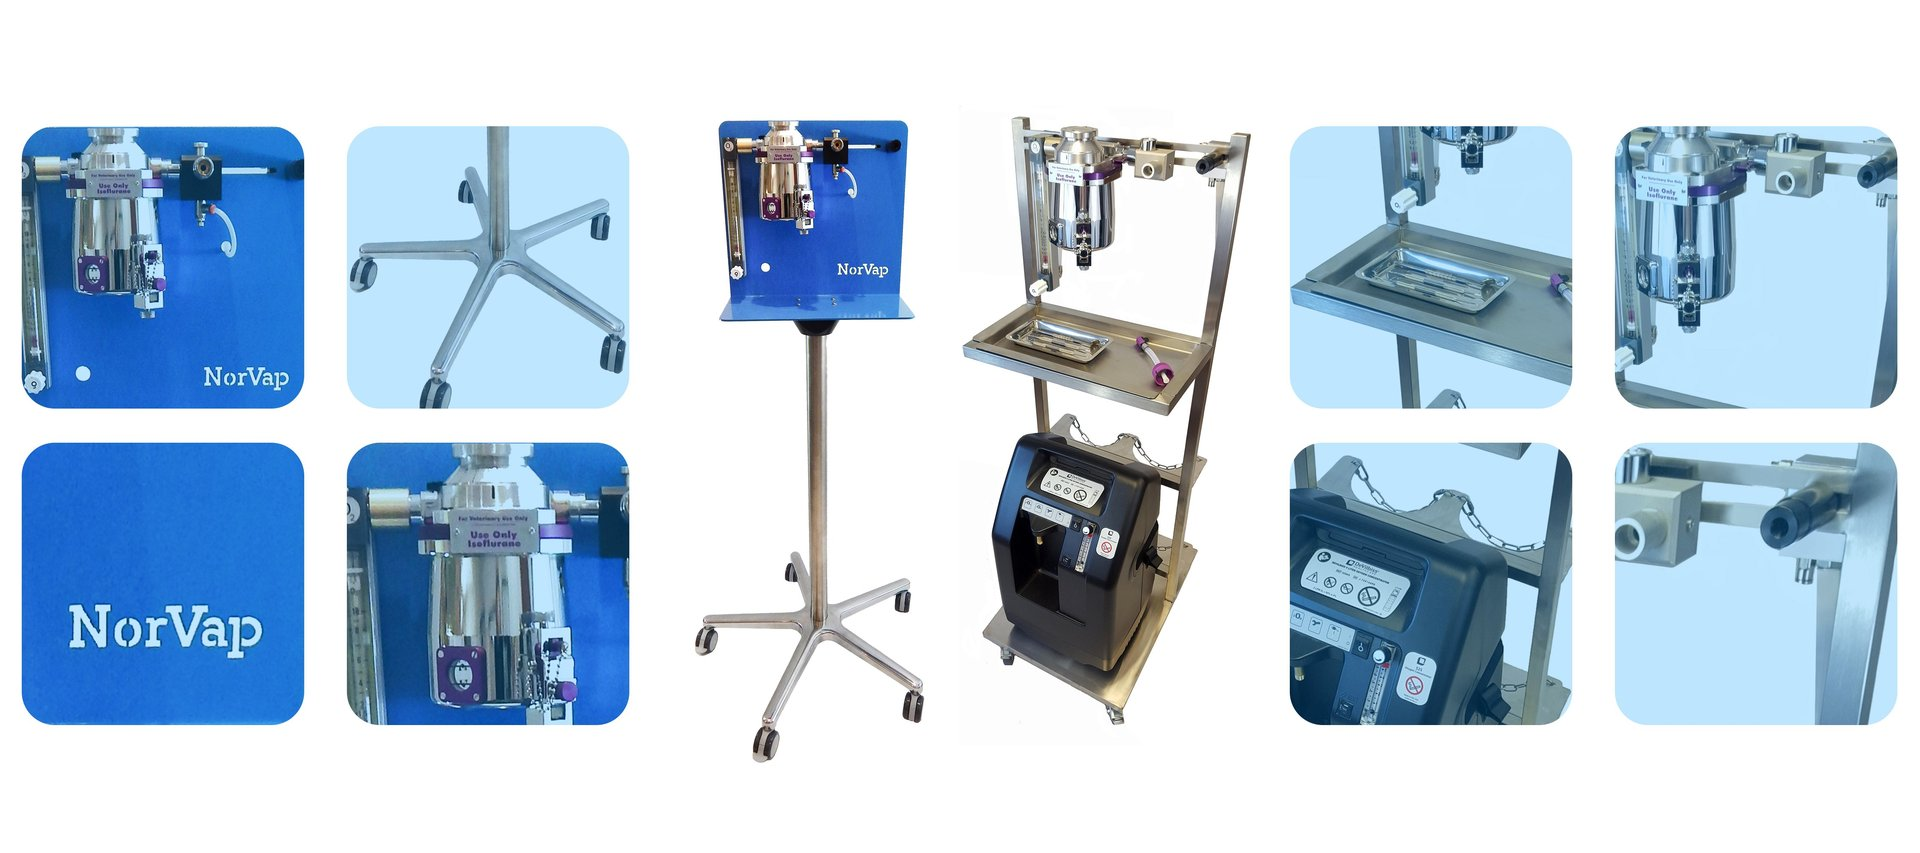 QUALITY SUPPLIERS OF BESPOKE ANAESTHESIA SOLUTIONS